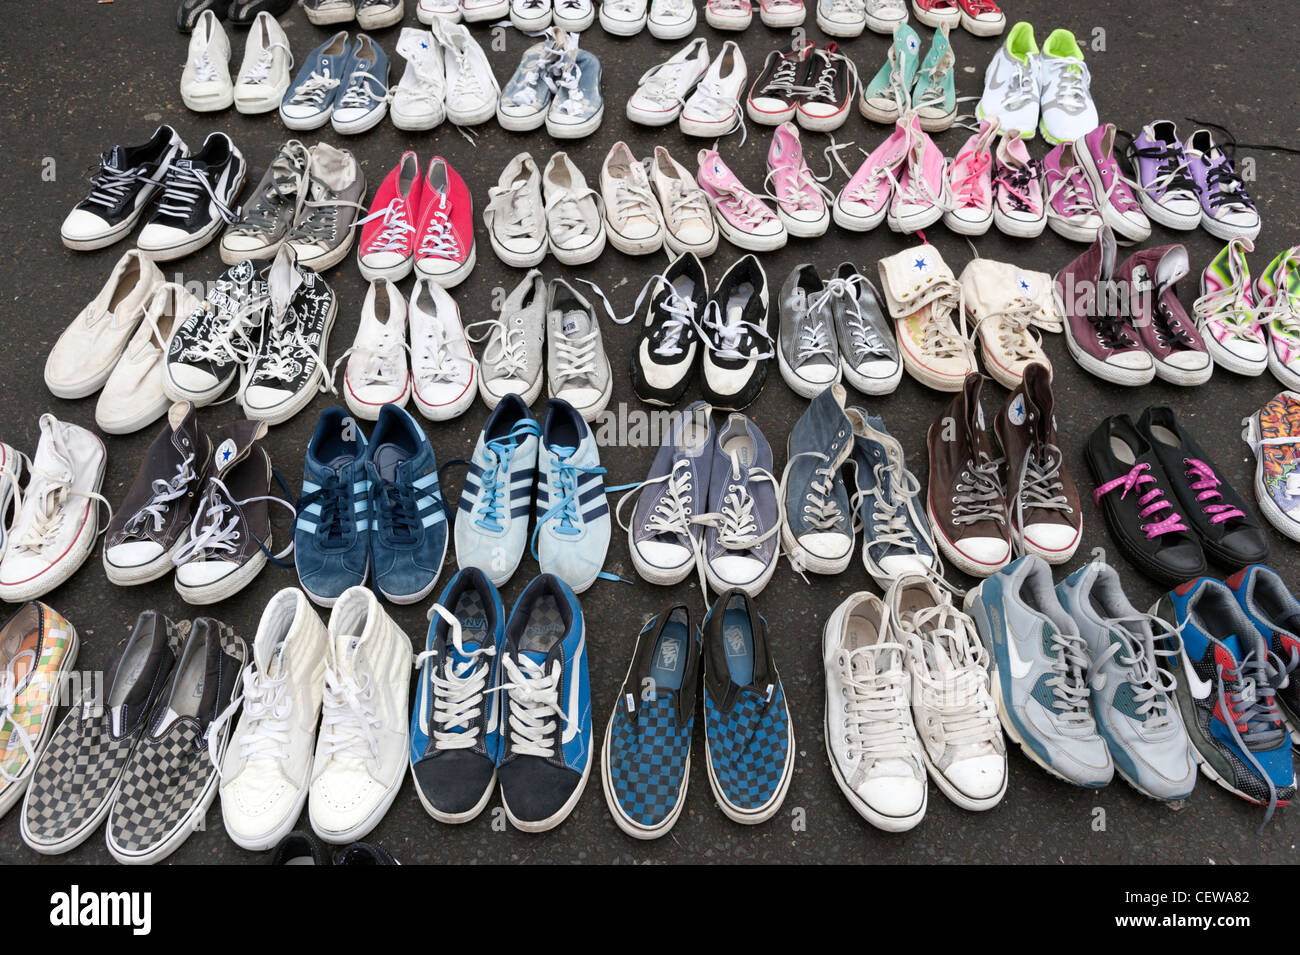 Old secondhand plimsoles for sale on market stall in Brick Lane, London, England, UK Stock Photo